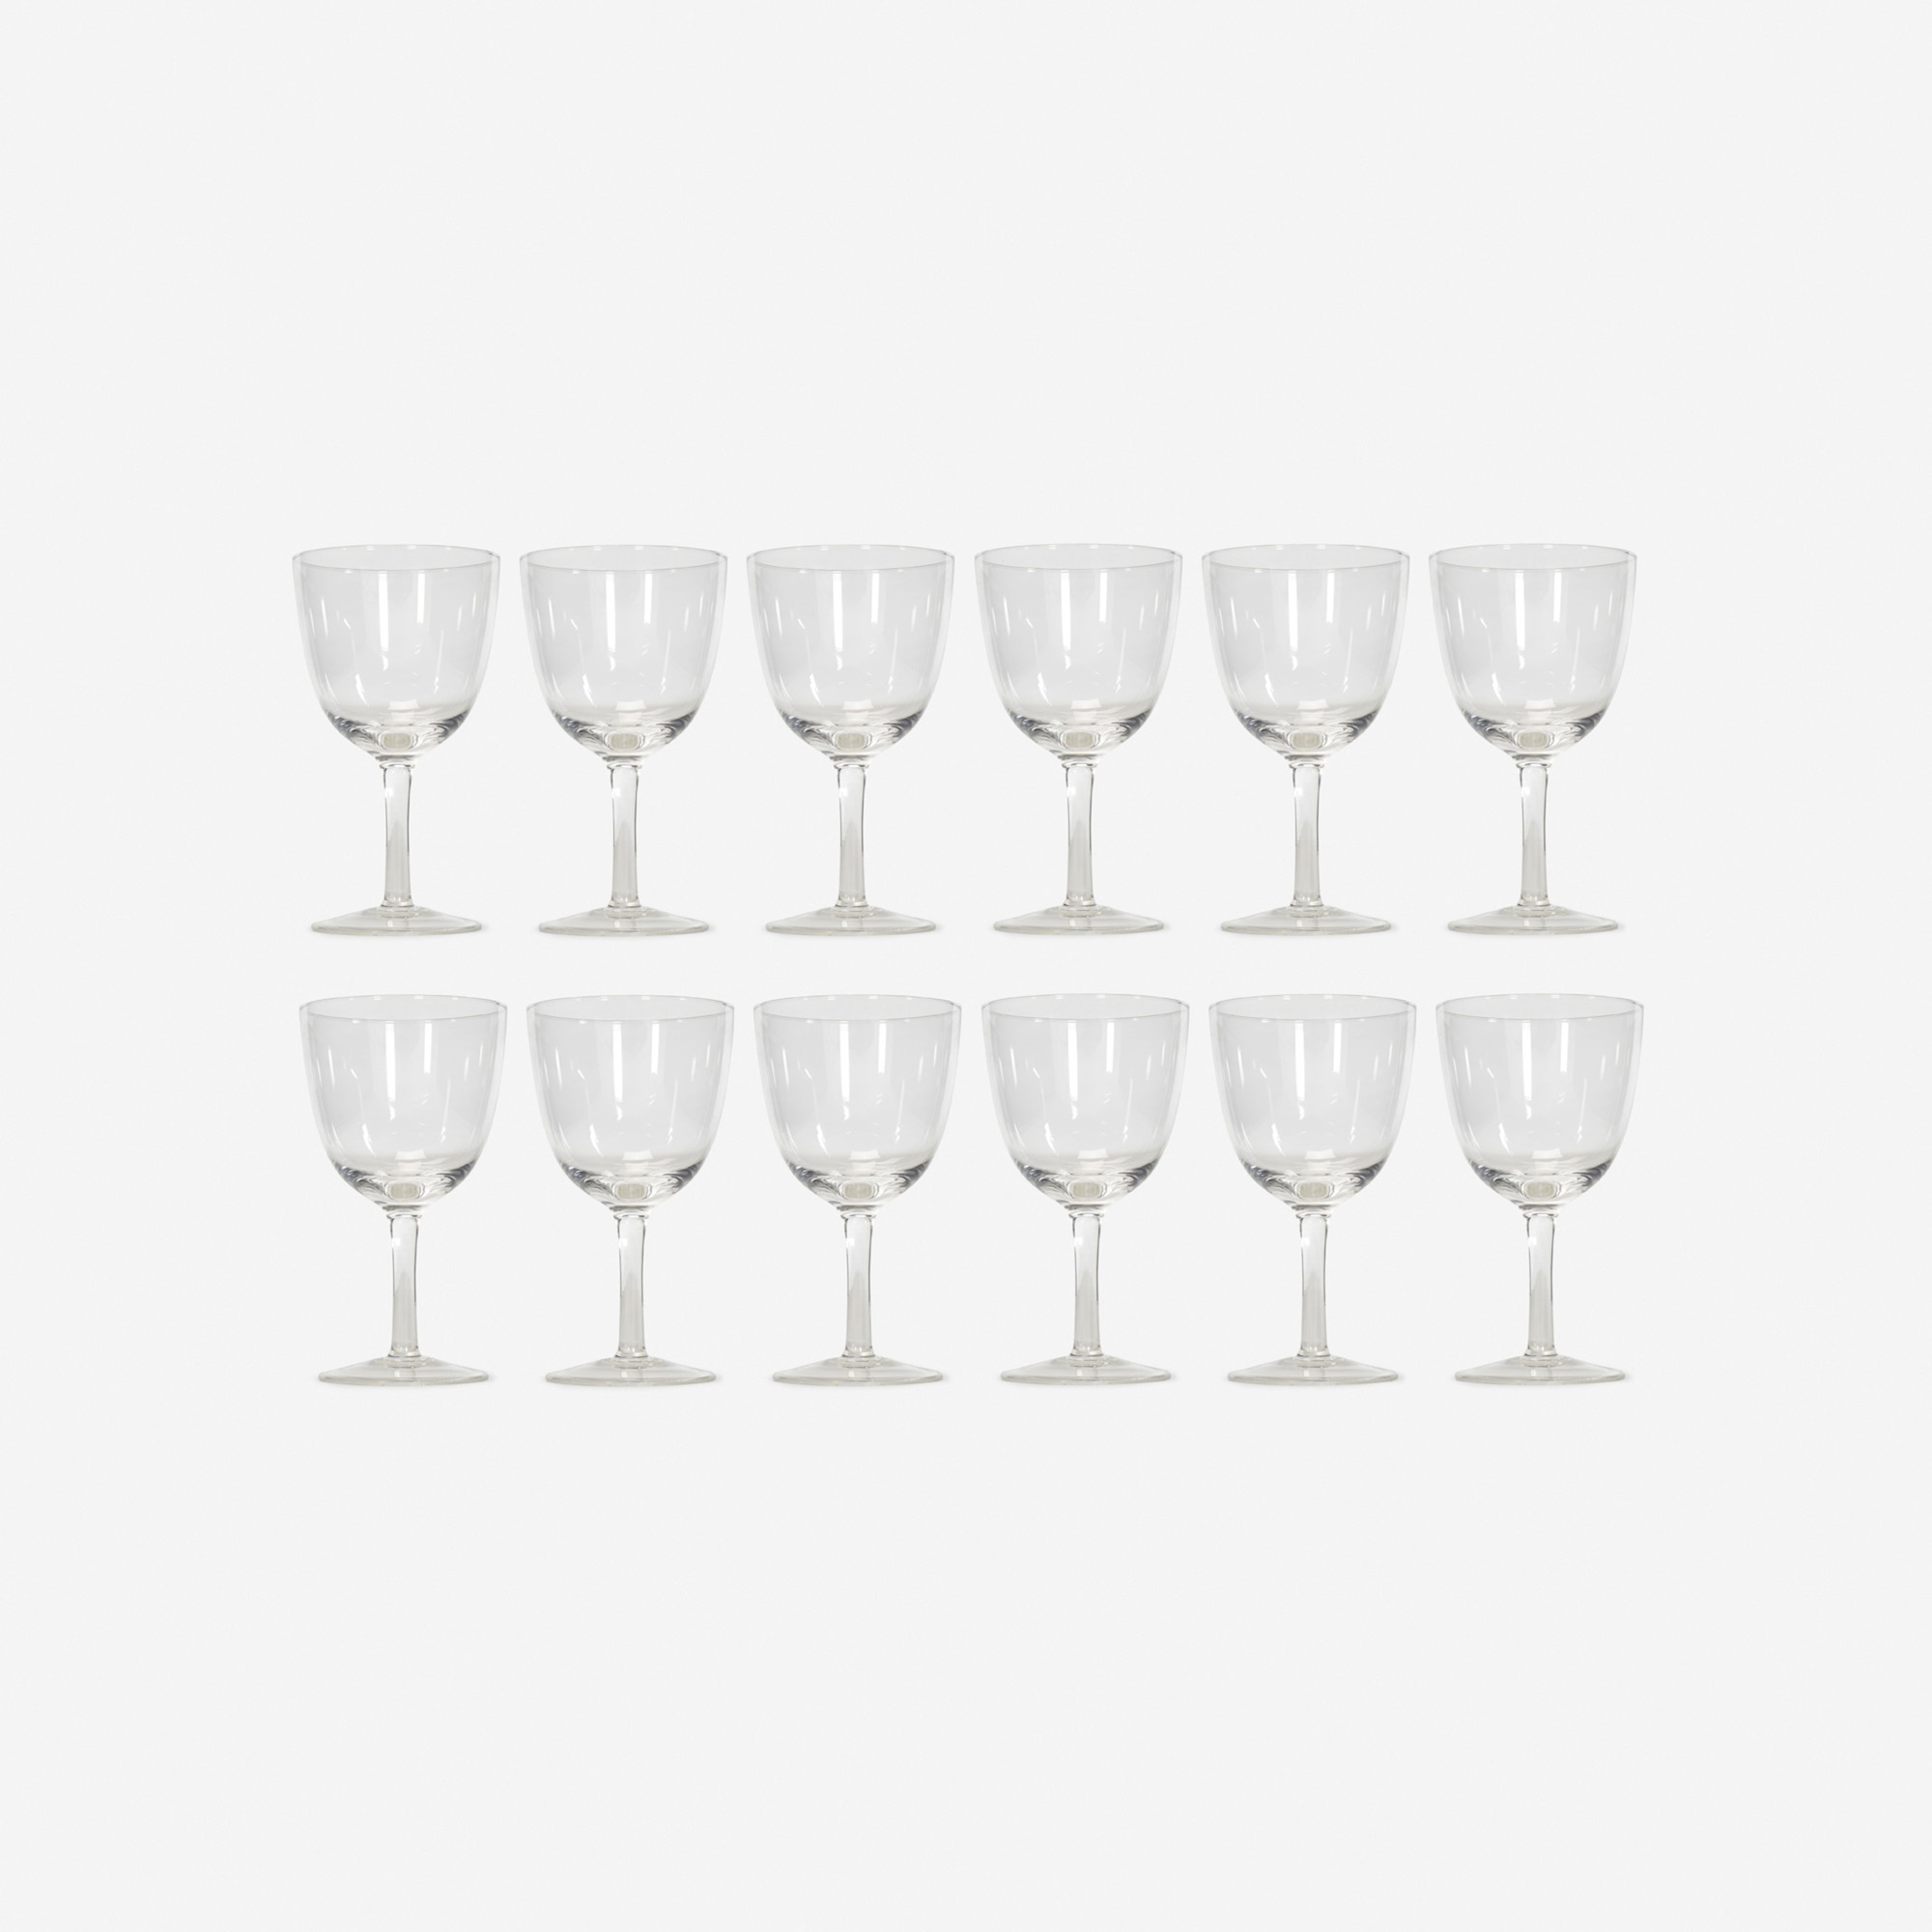 611: Garth and Ada Louise Huxtable / Water glasses from The Four Seasons, set of twelve (1 of 1)